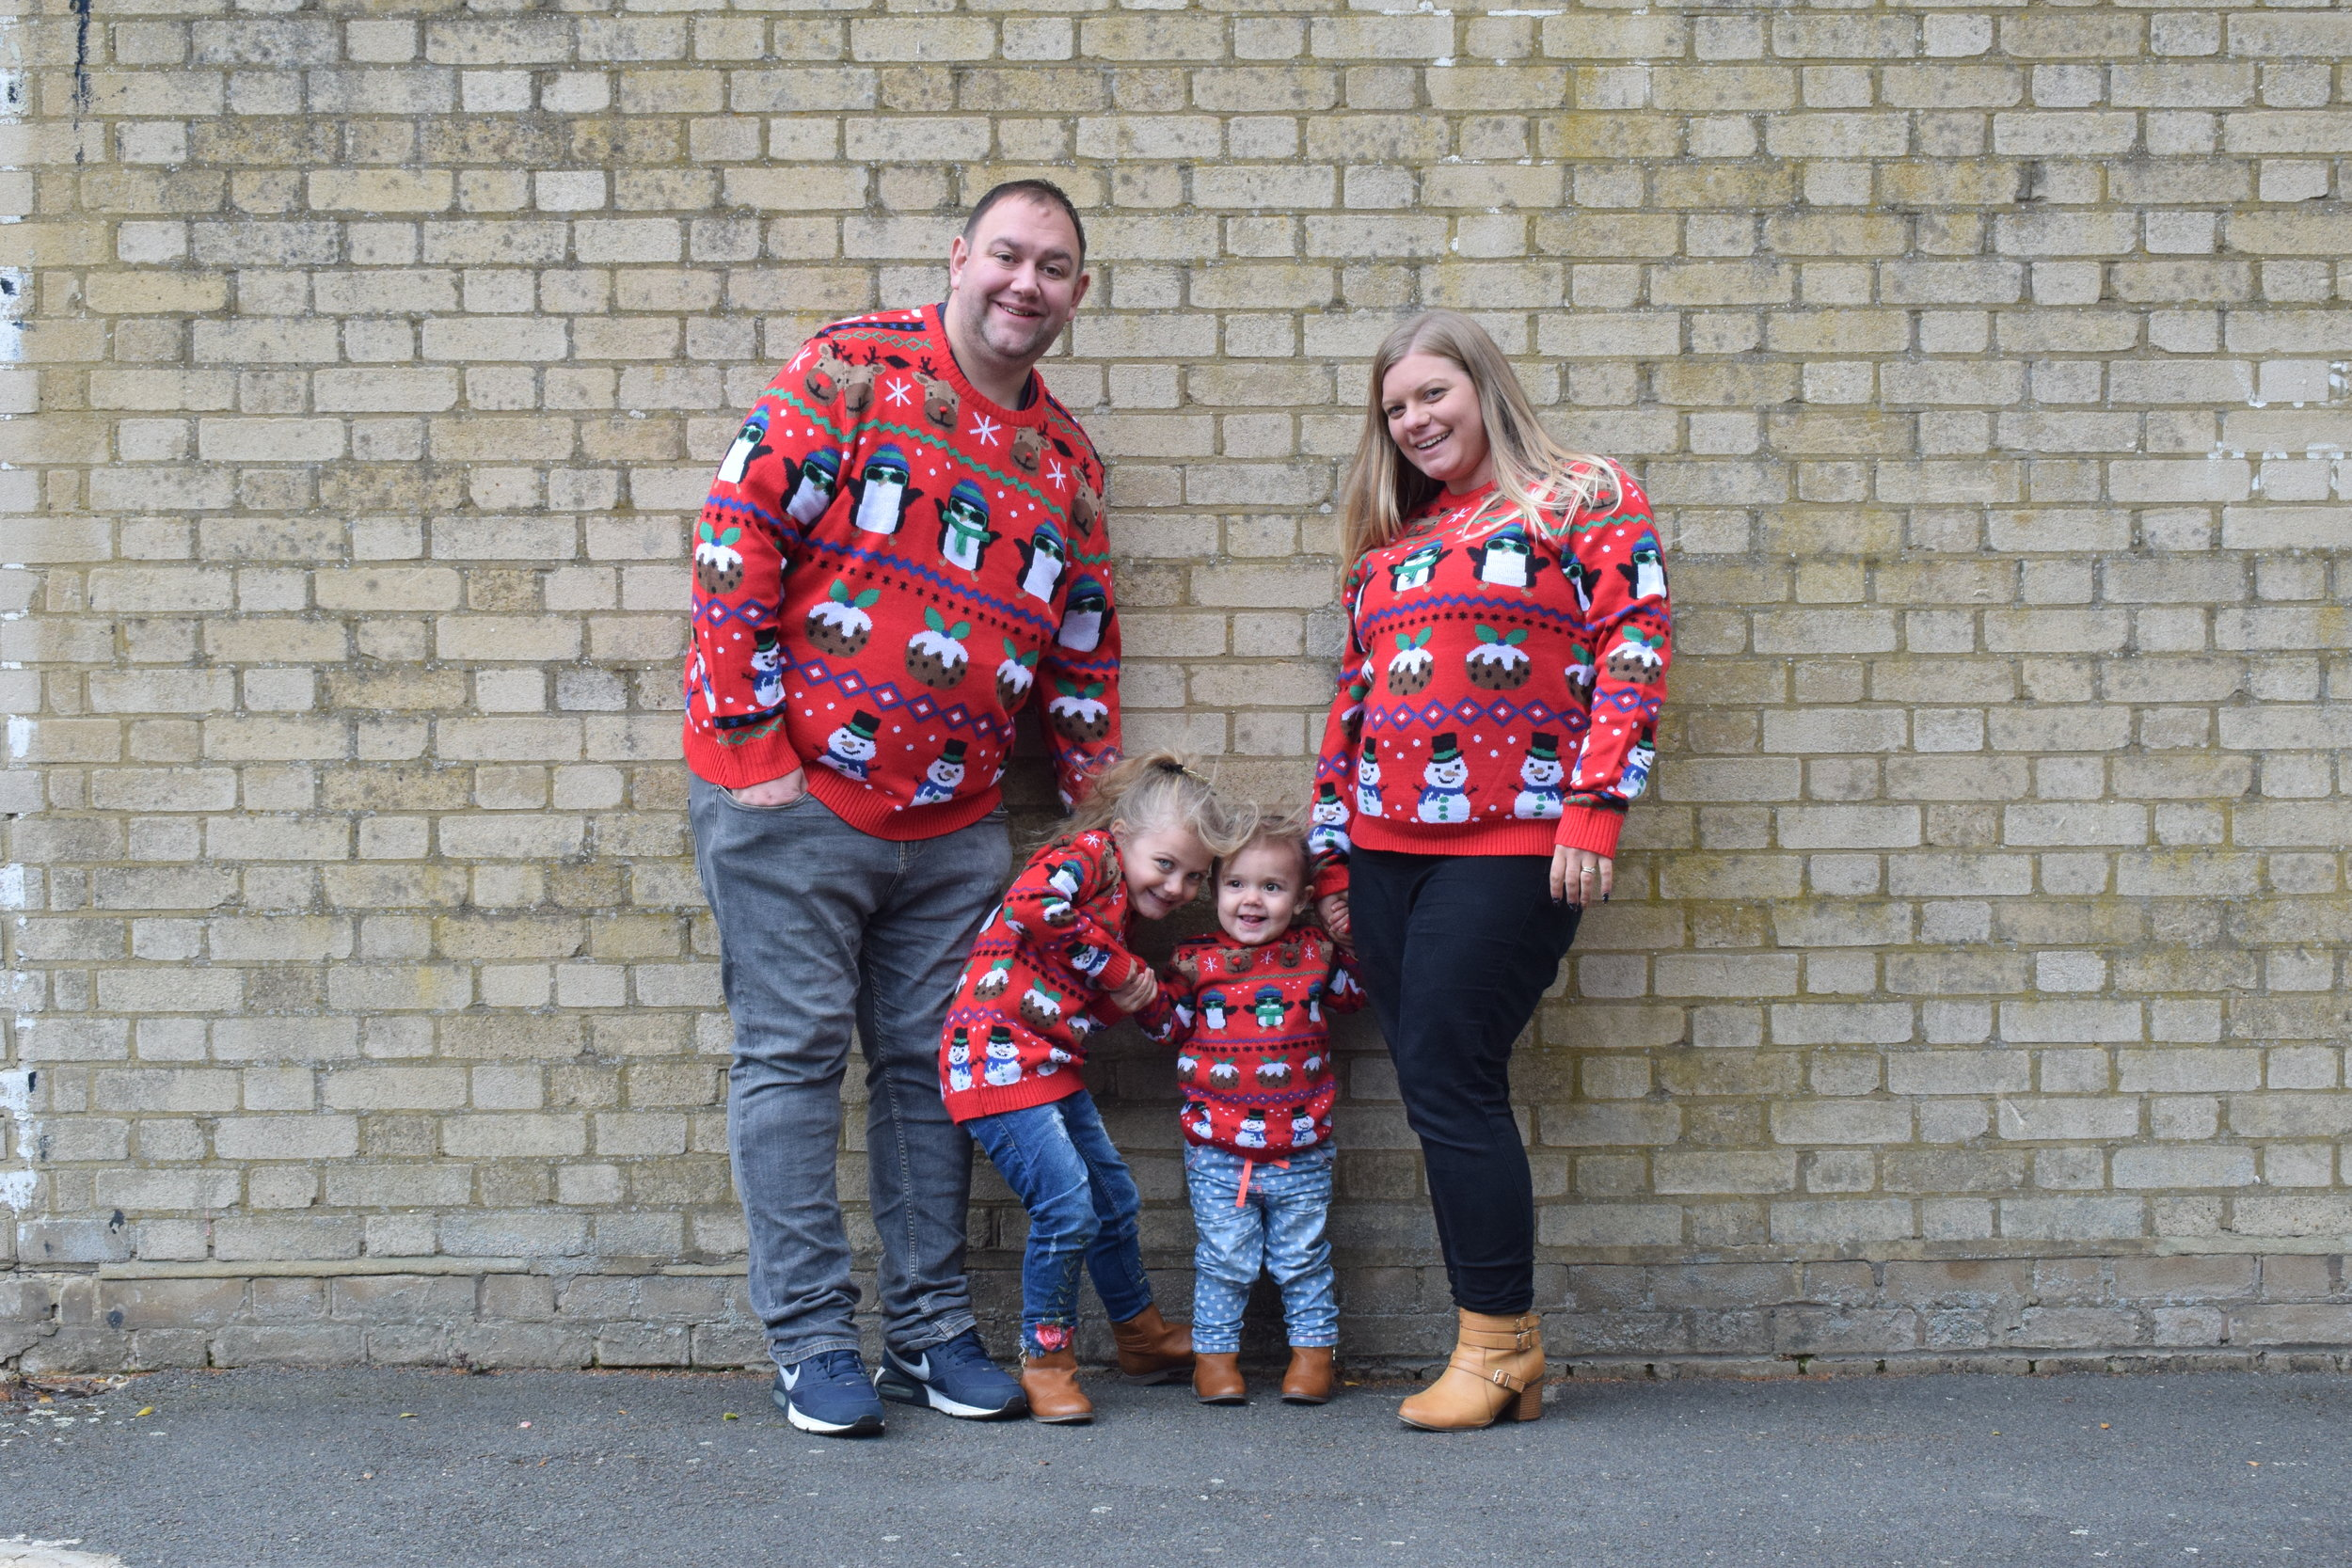 My family in matching Christmas jumpers